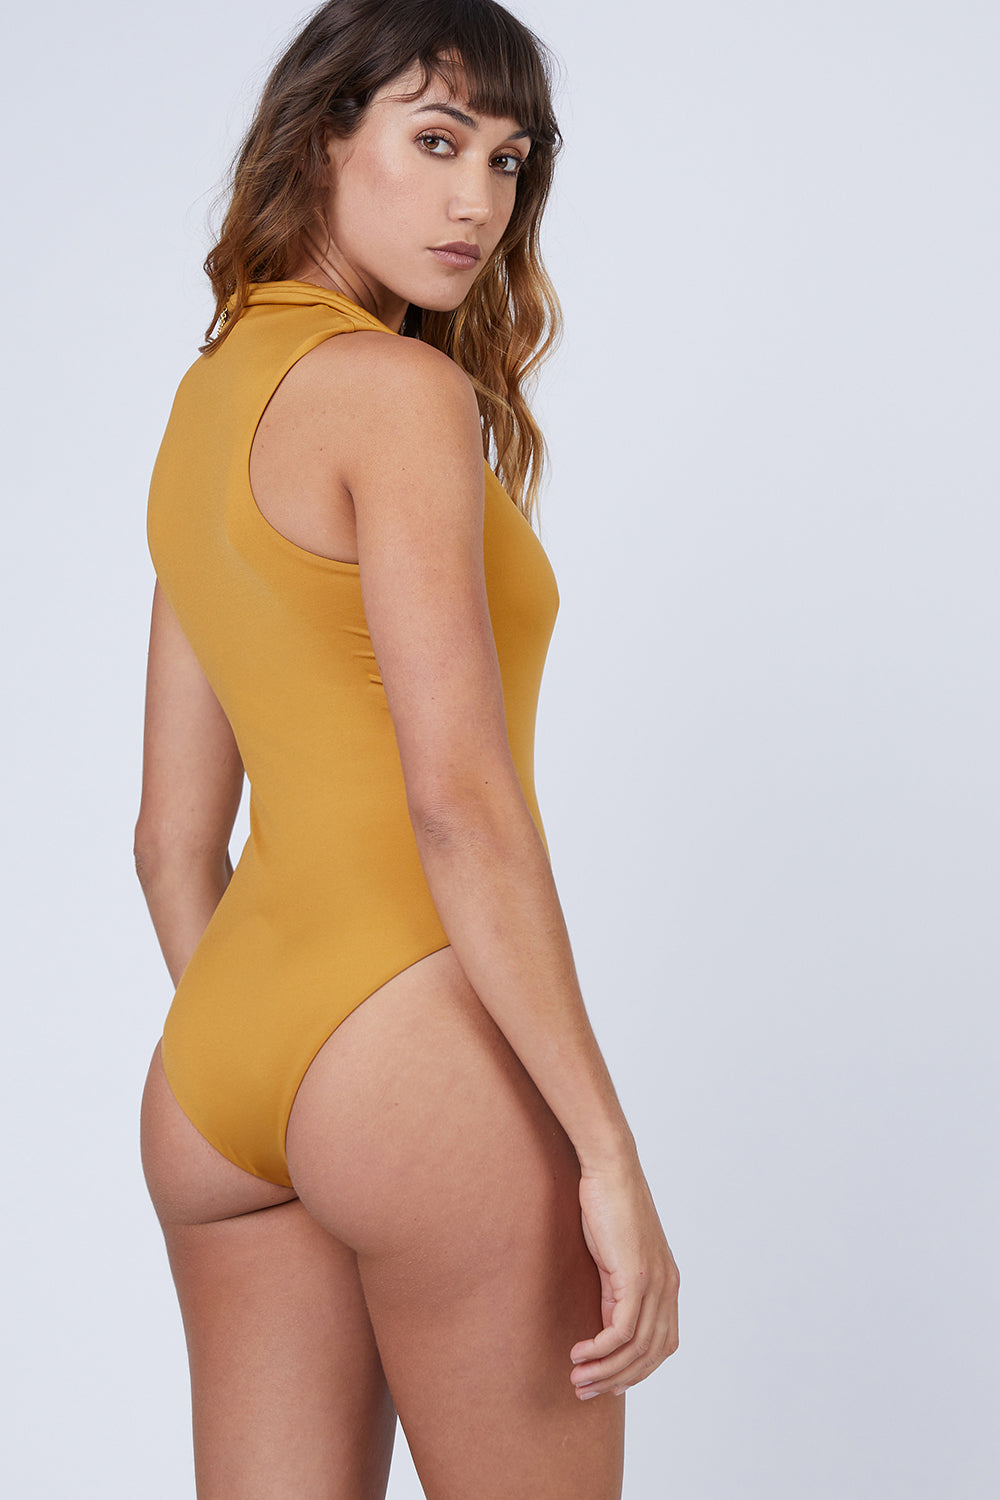 55c65a1b64 ... AMAIO SWIM Collette Plunging One Piece Swimsuit - Gold - undefined  undefined